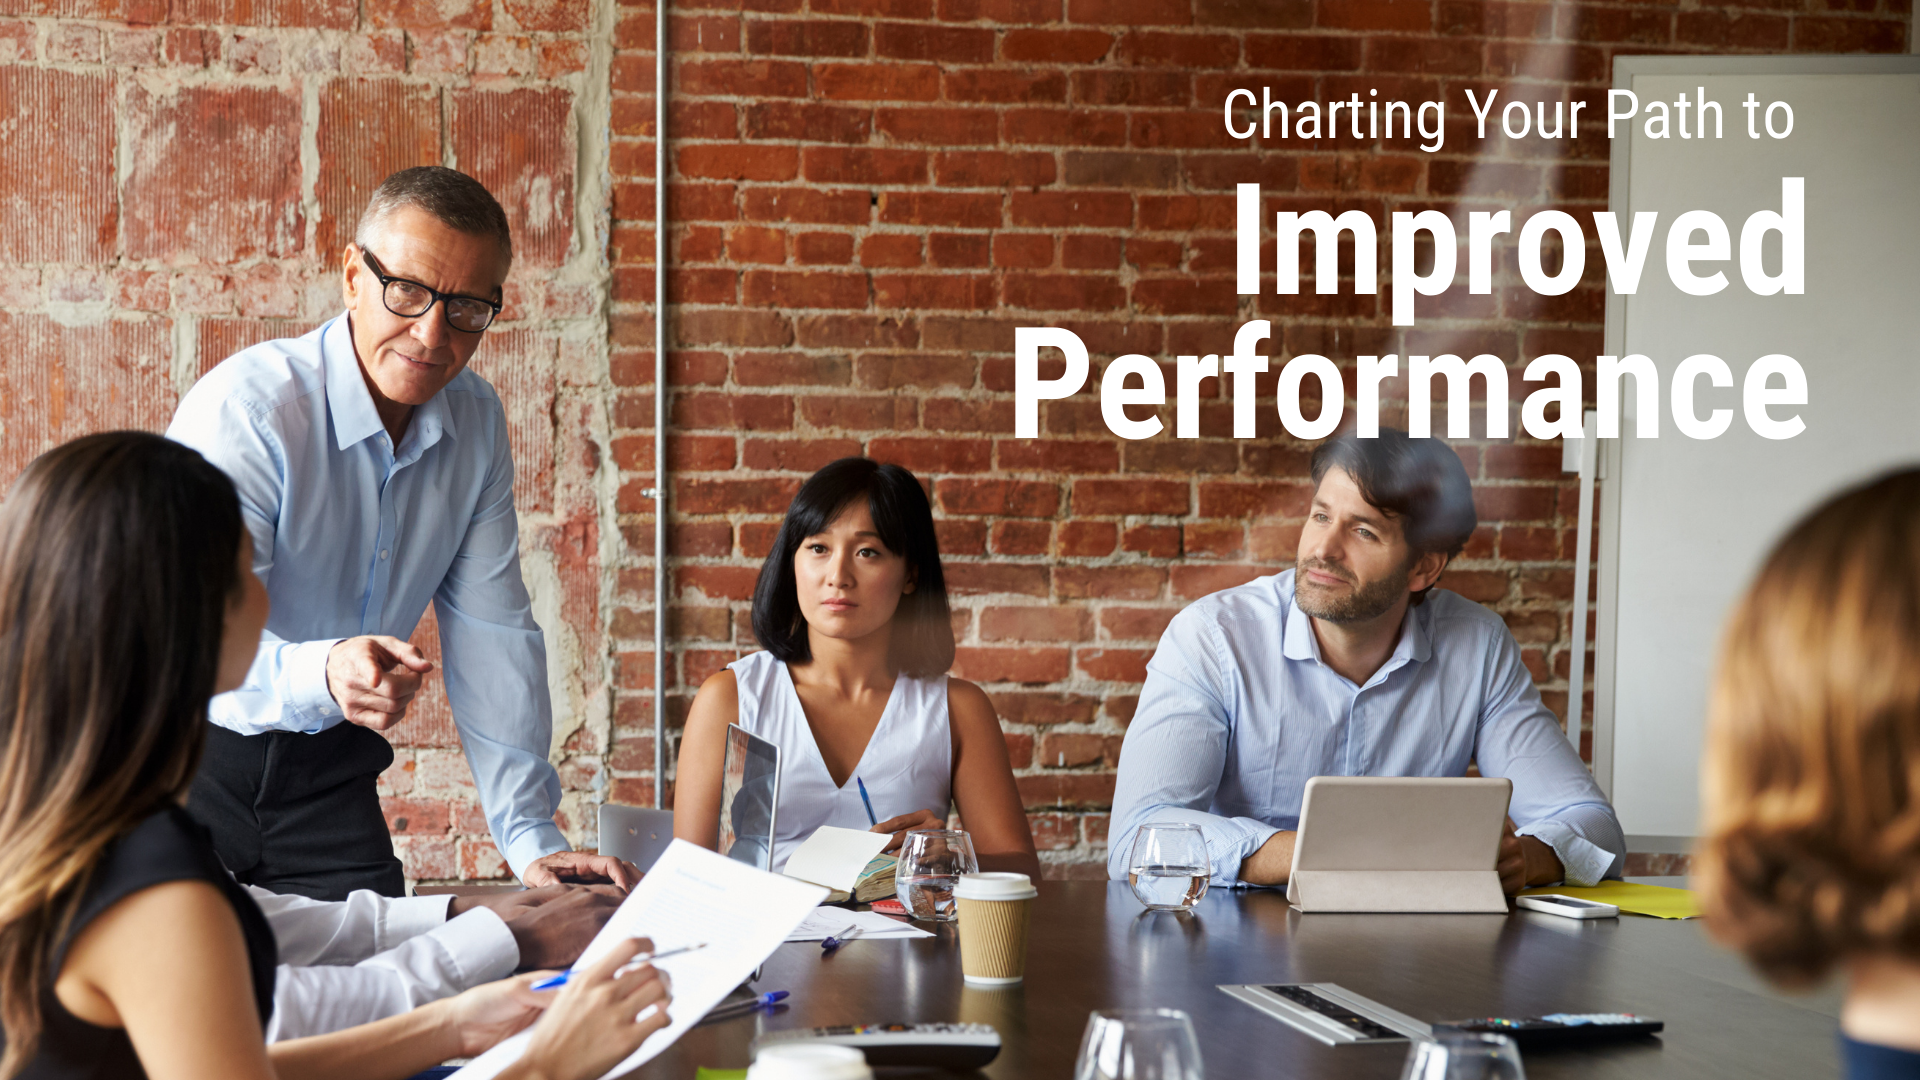 Charting Your Path to Improved Performance